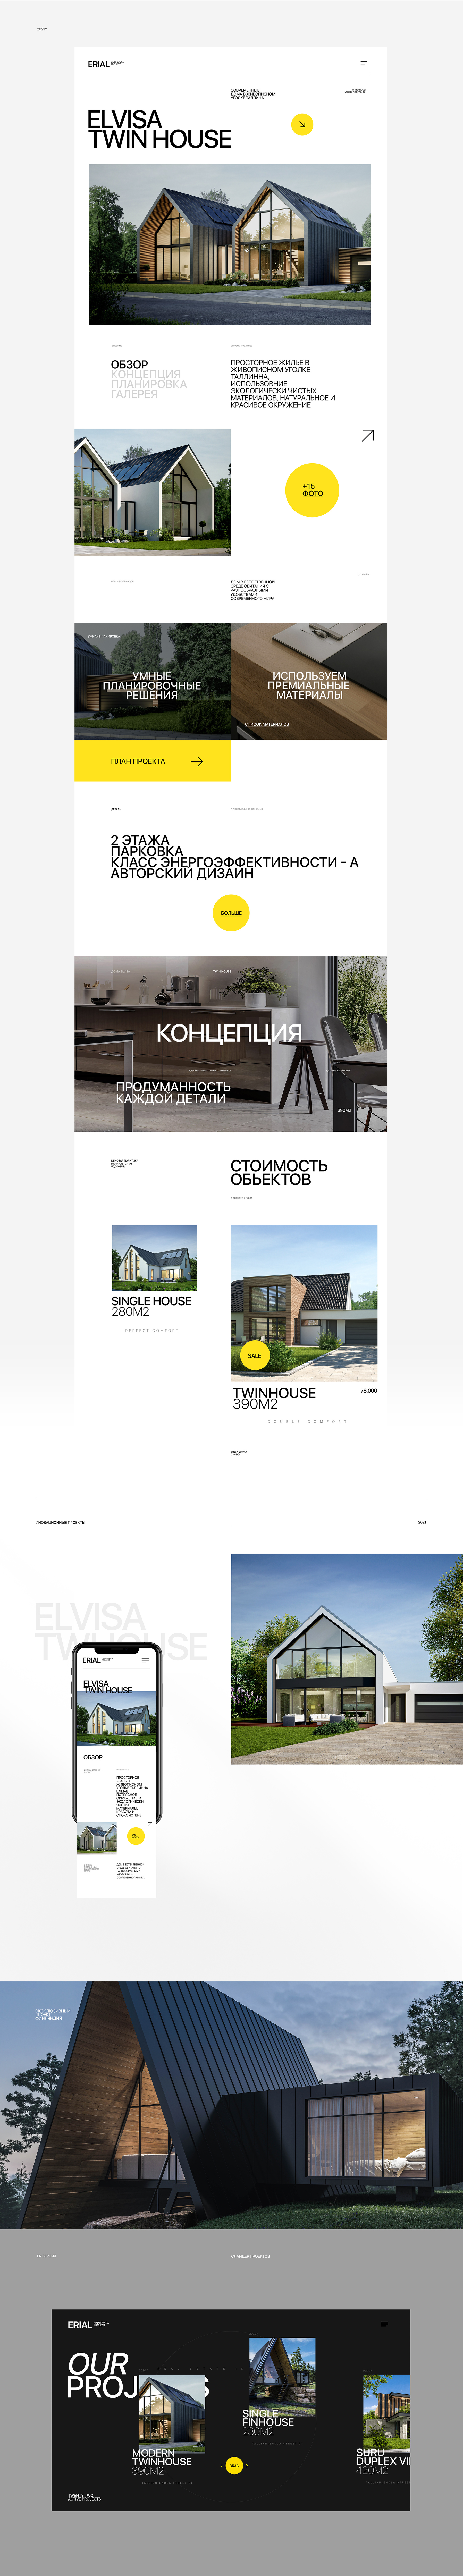 REALESTATE CONCEPT